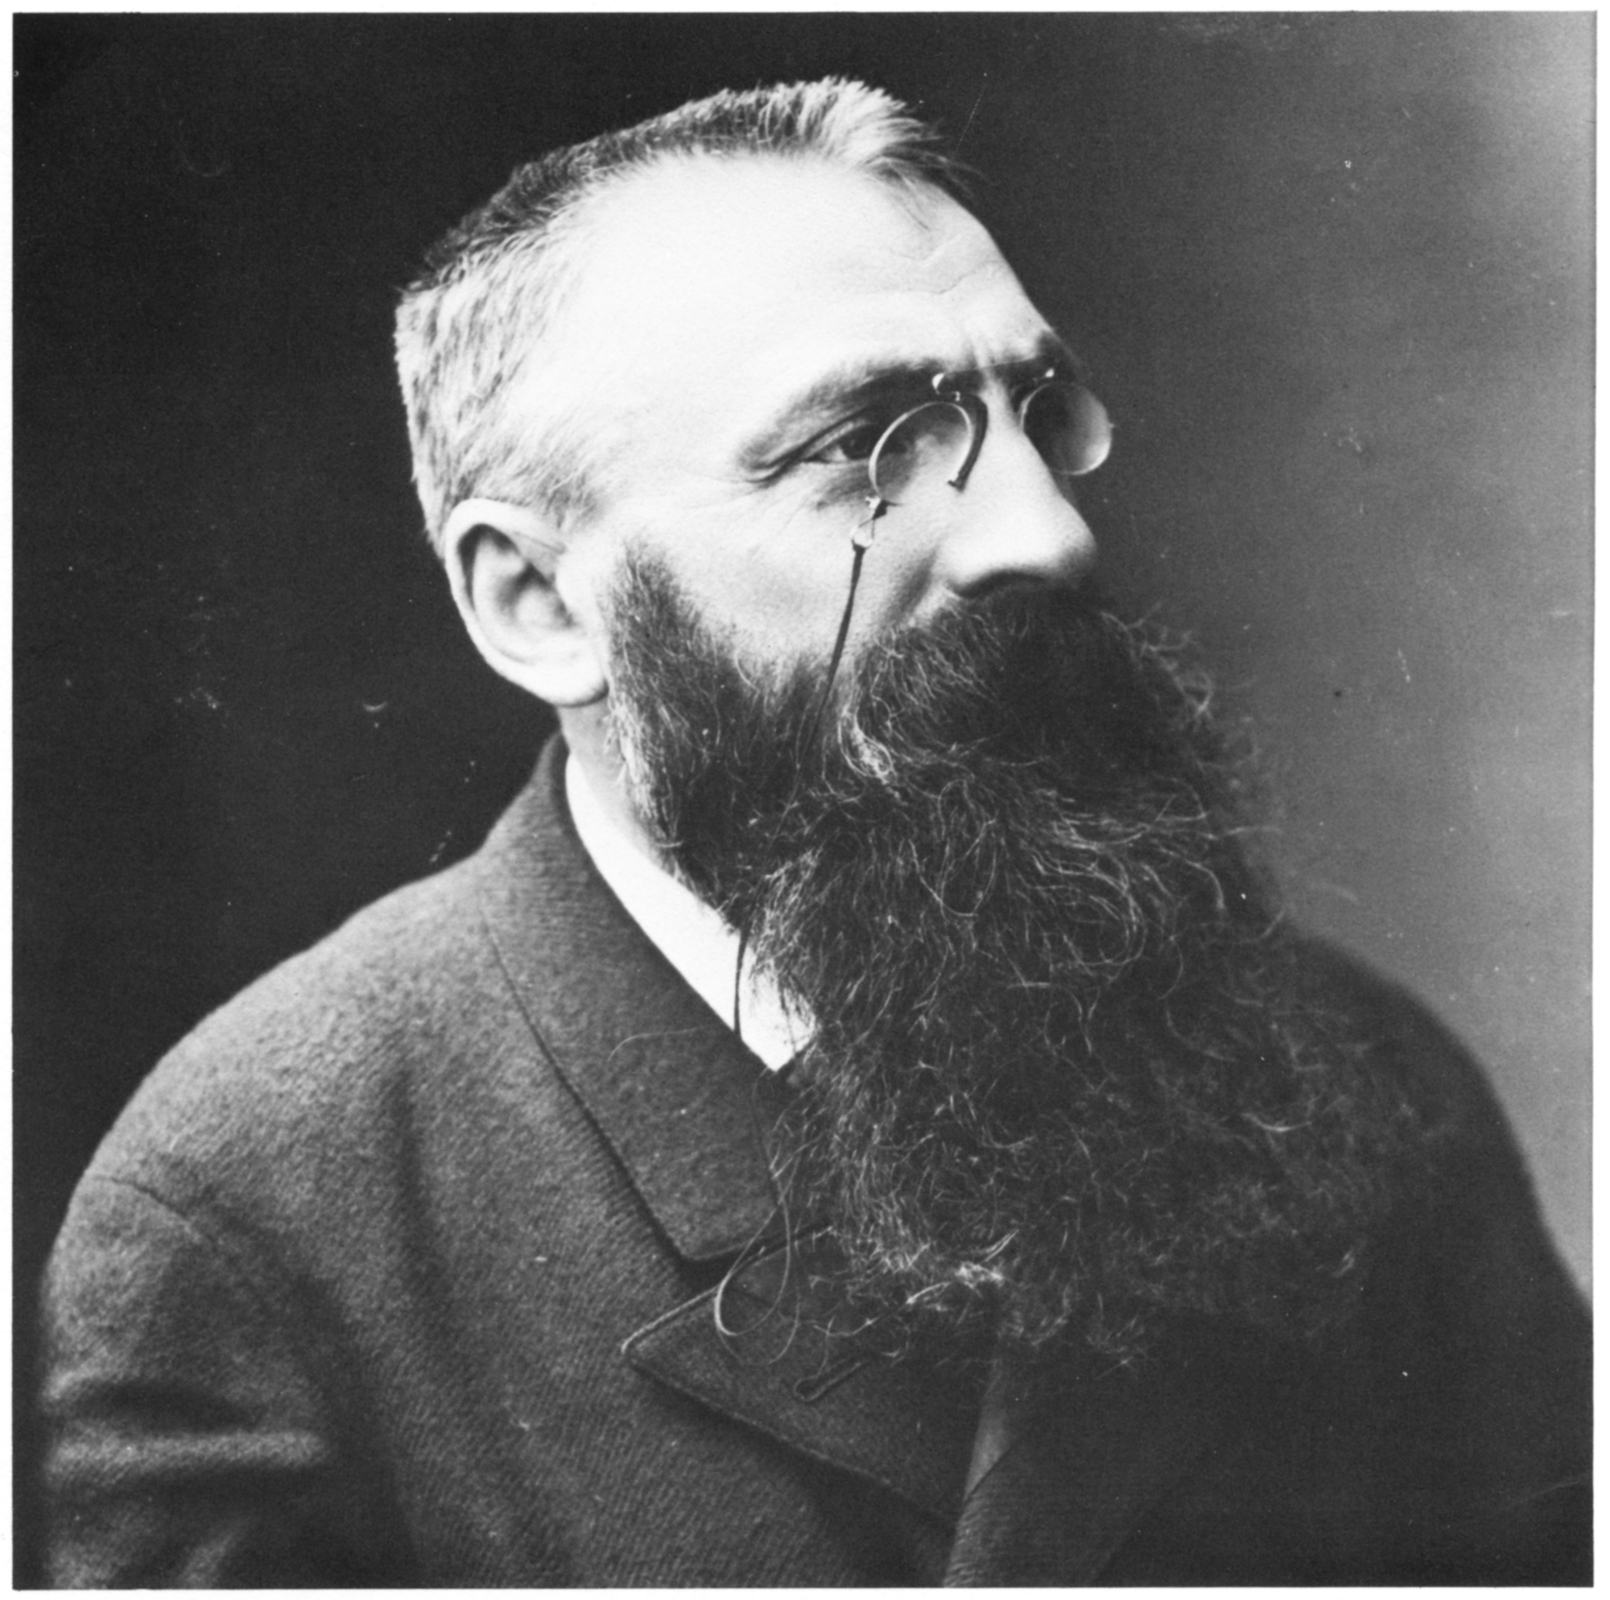 auguste rodin The public are weary of statues that say nothing well, here is a man coming forward whose statues live and speak, and speak things worth uttering.